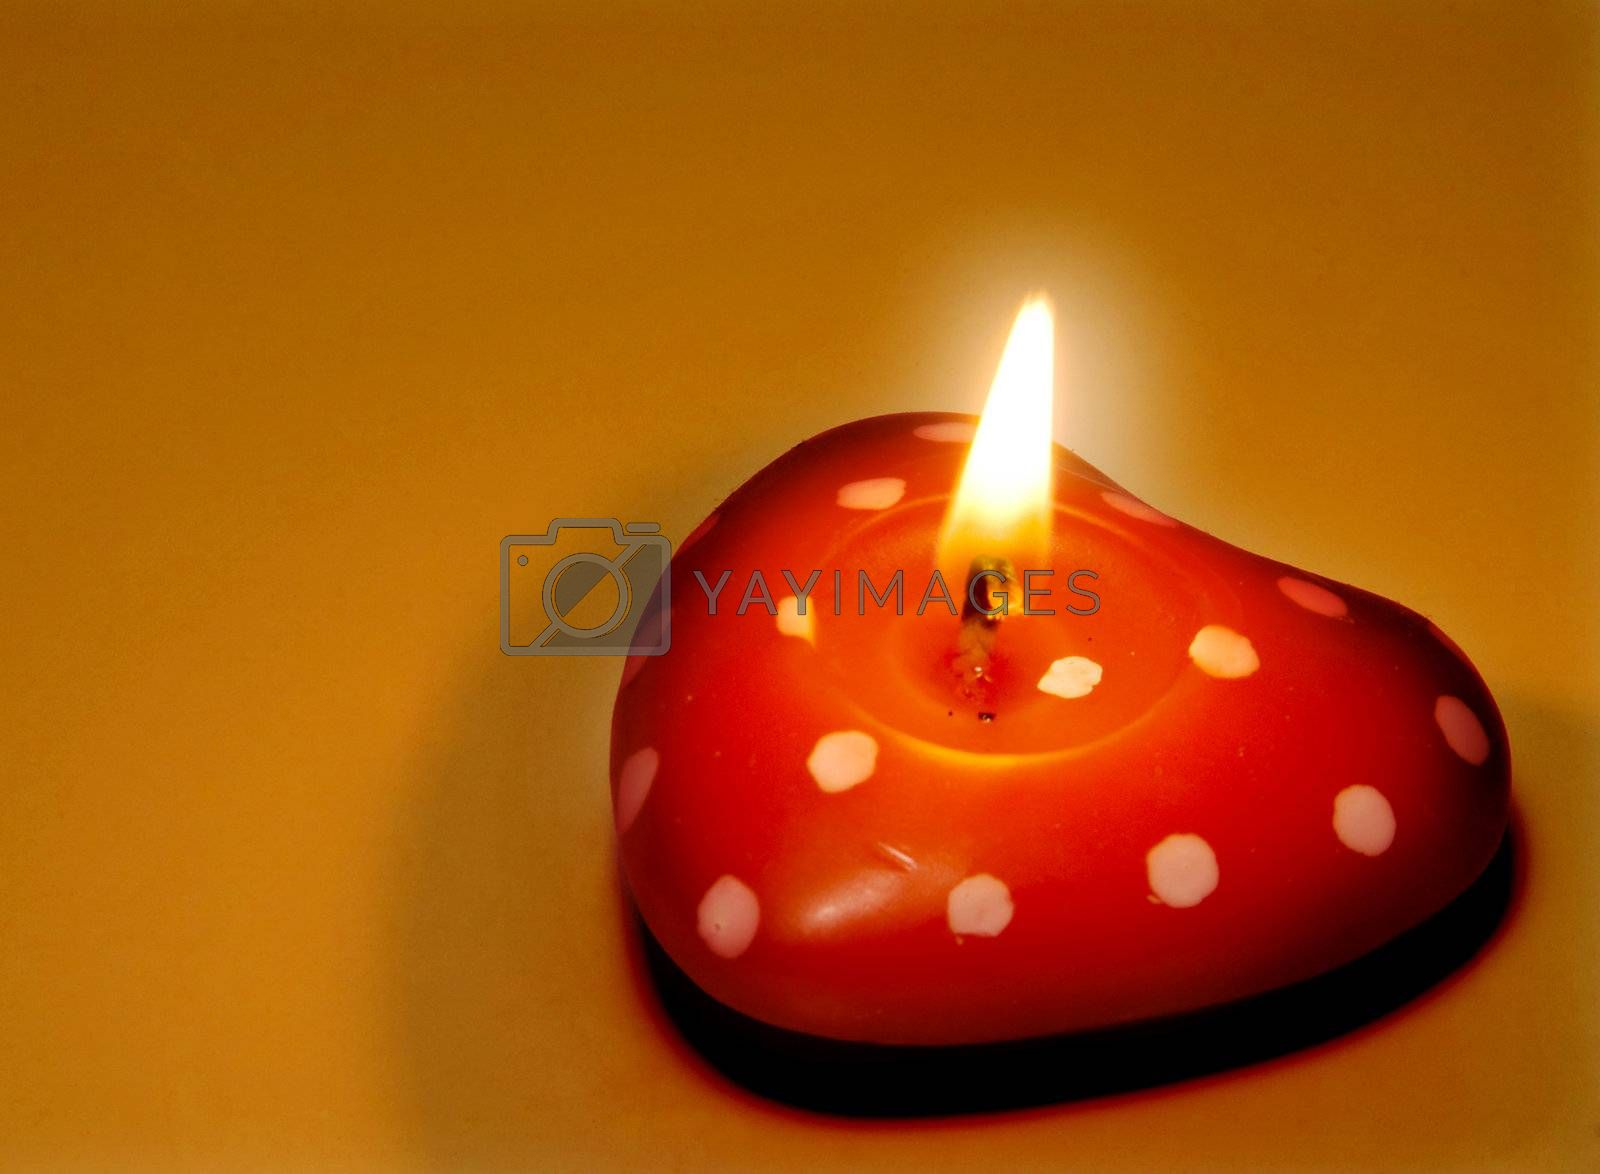 A Heart Shaped Candle decoration for Valentines day.